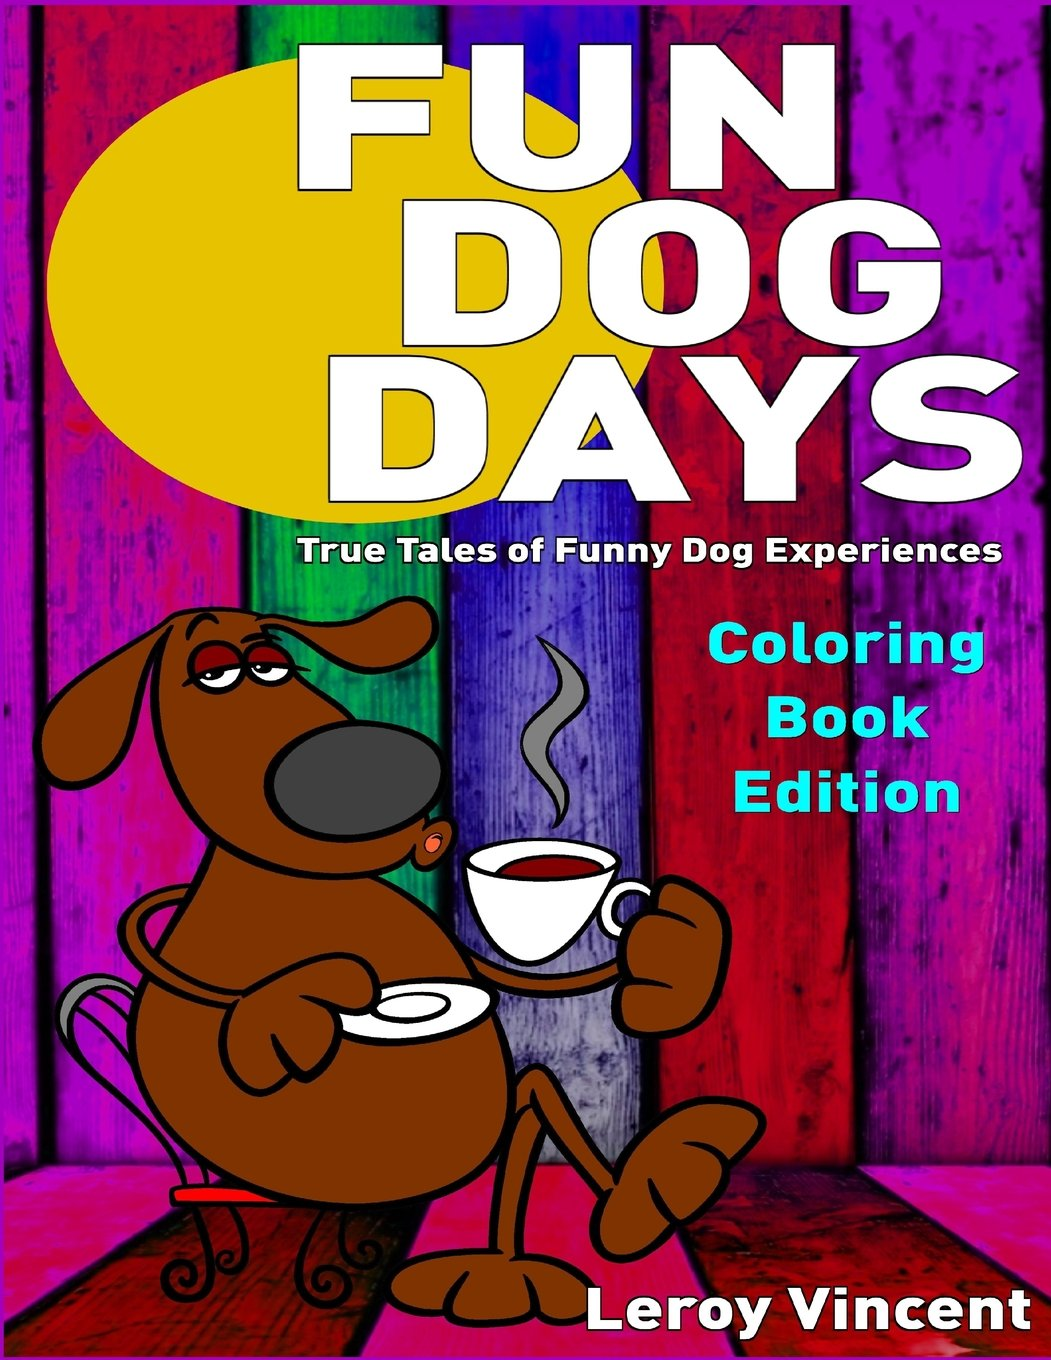 Download Fun Dog Days Coloring Book: True Tales of Funny Dog Experiences ebook